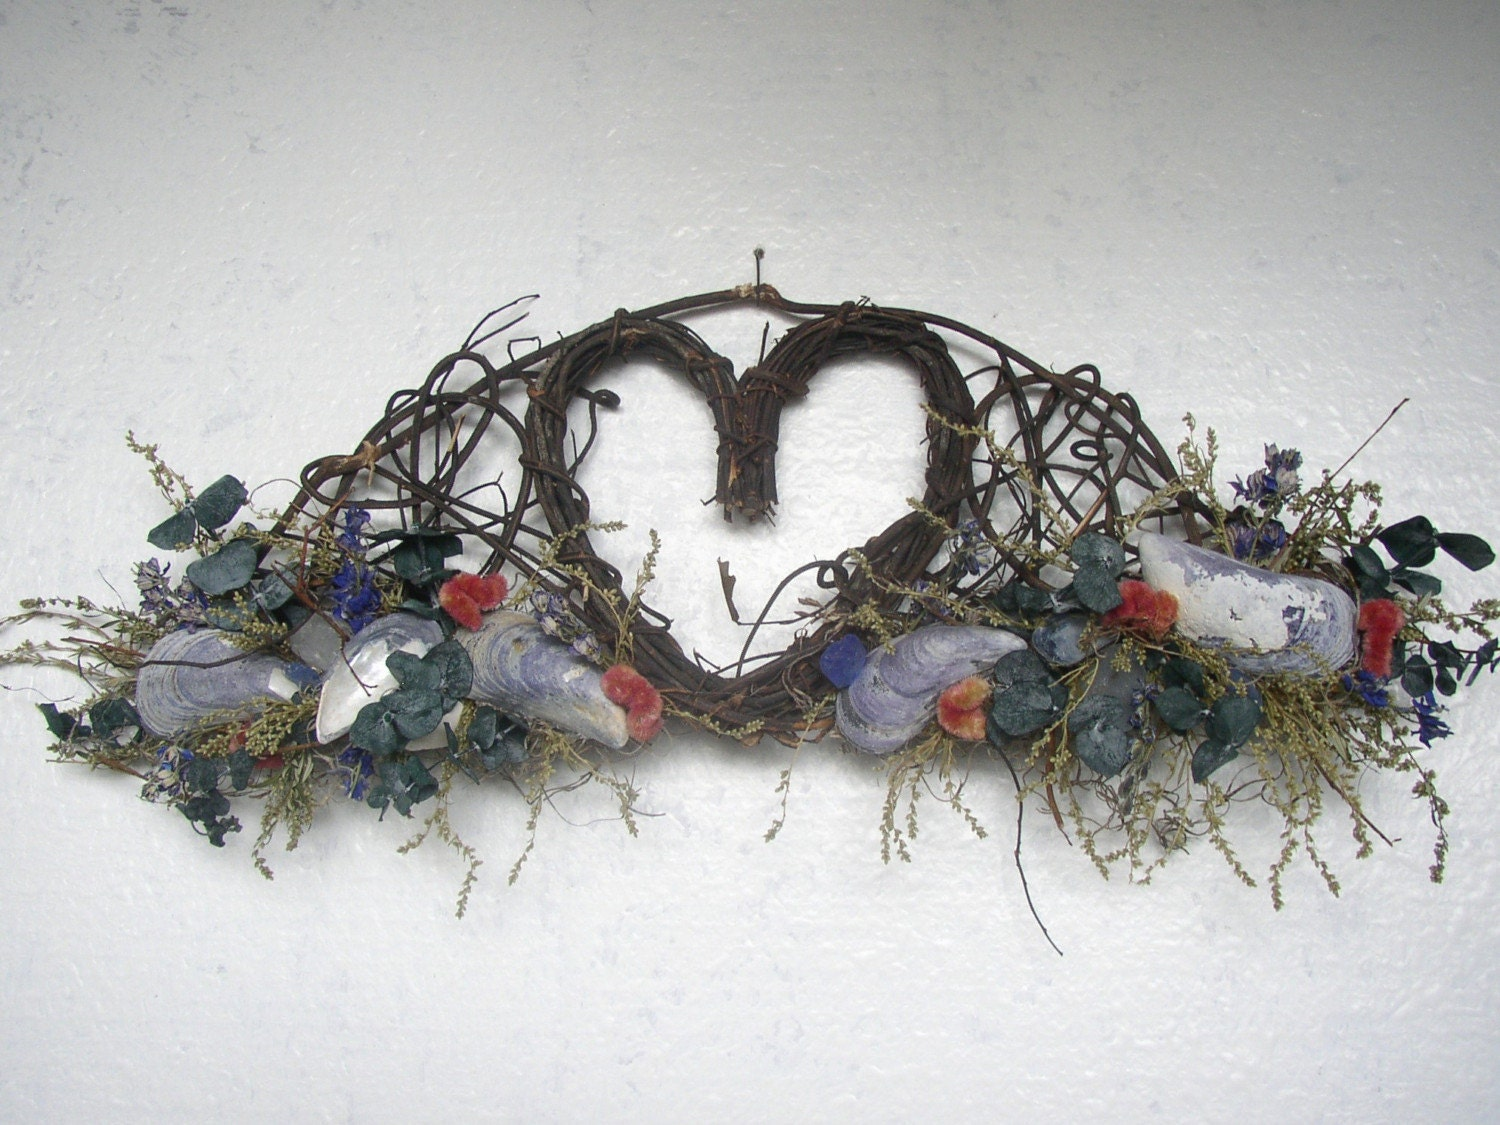 Twig Wall Piece with Heart Shaped Center decorated with Shells and Dried Flowers